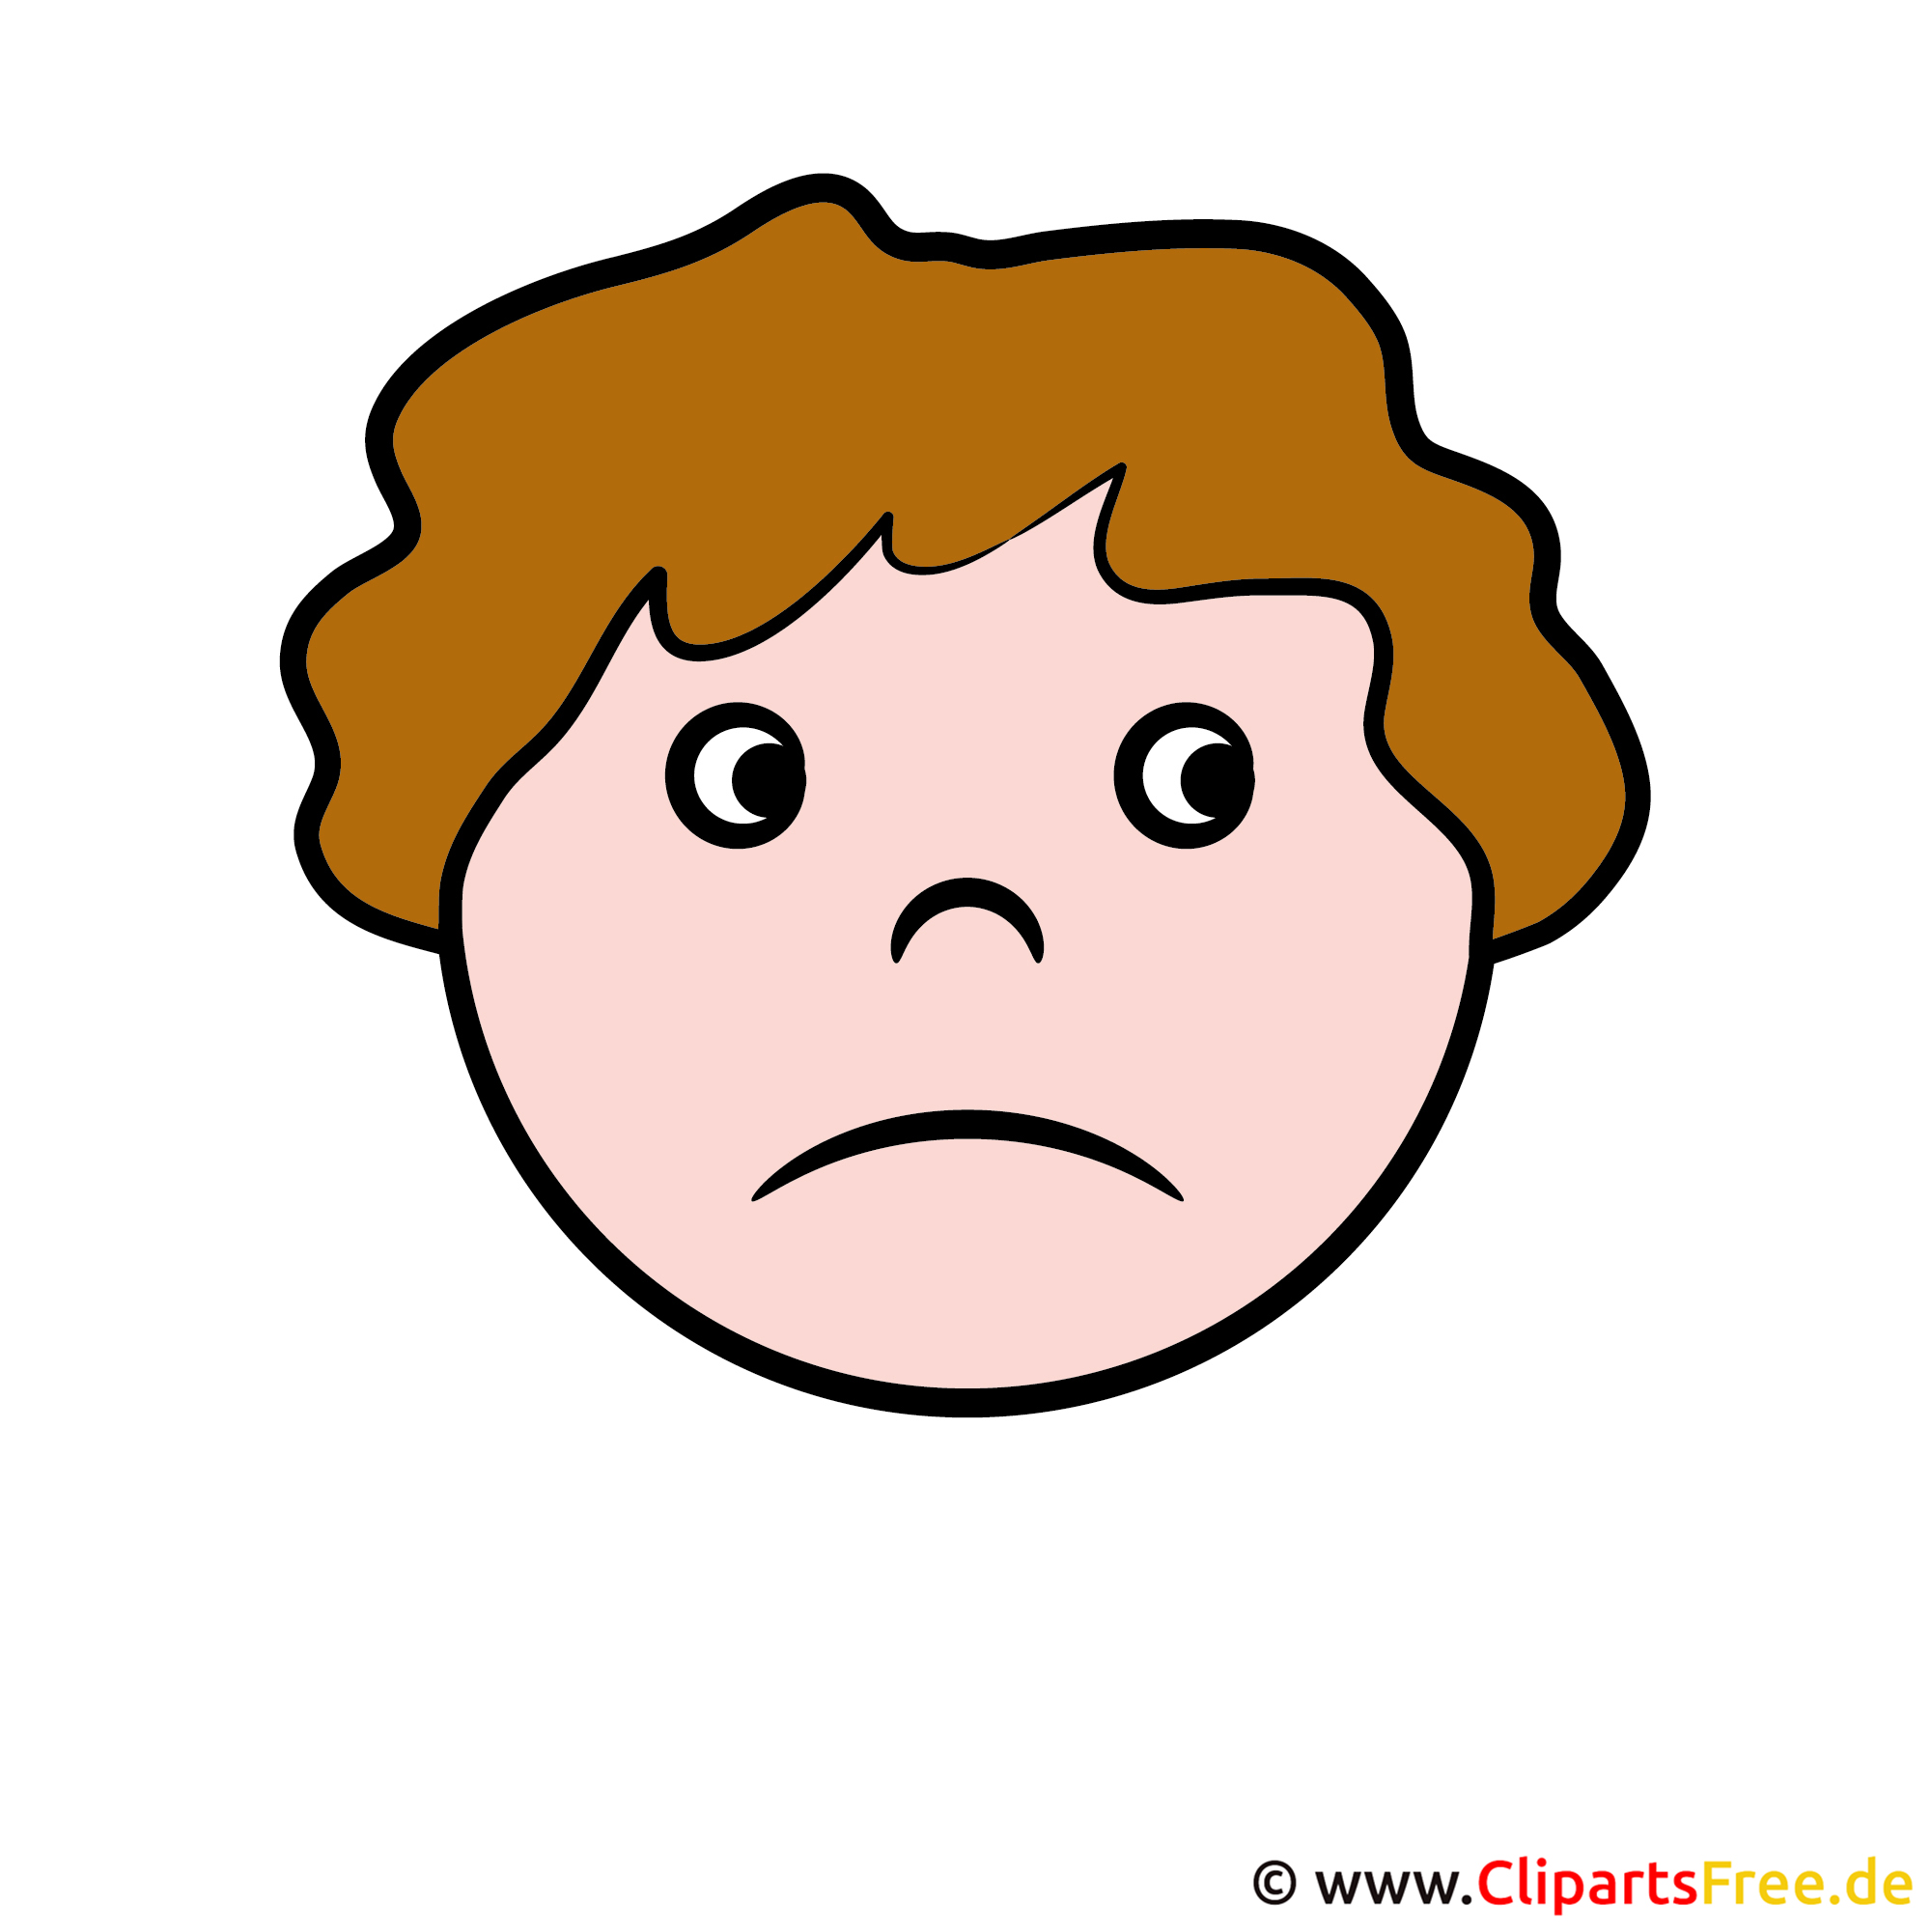 Gesicht traurig for Clipart gratis download